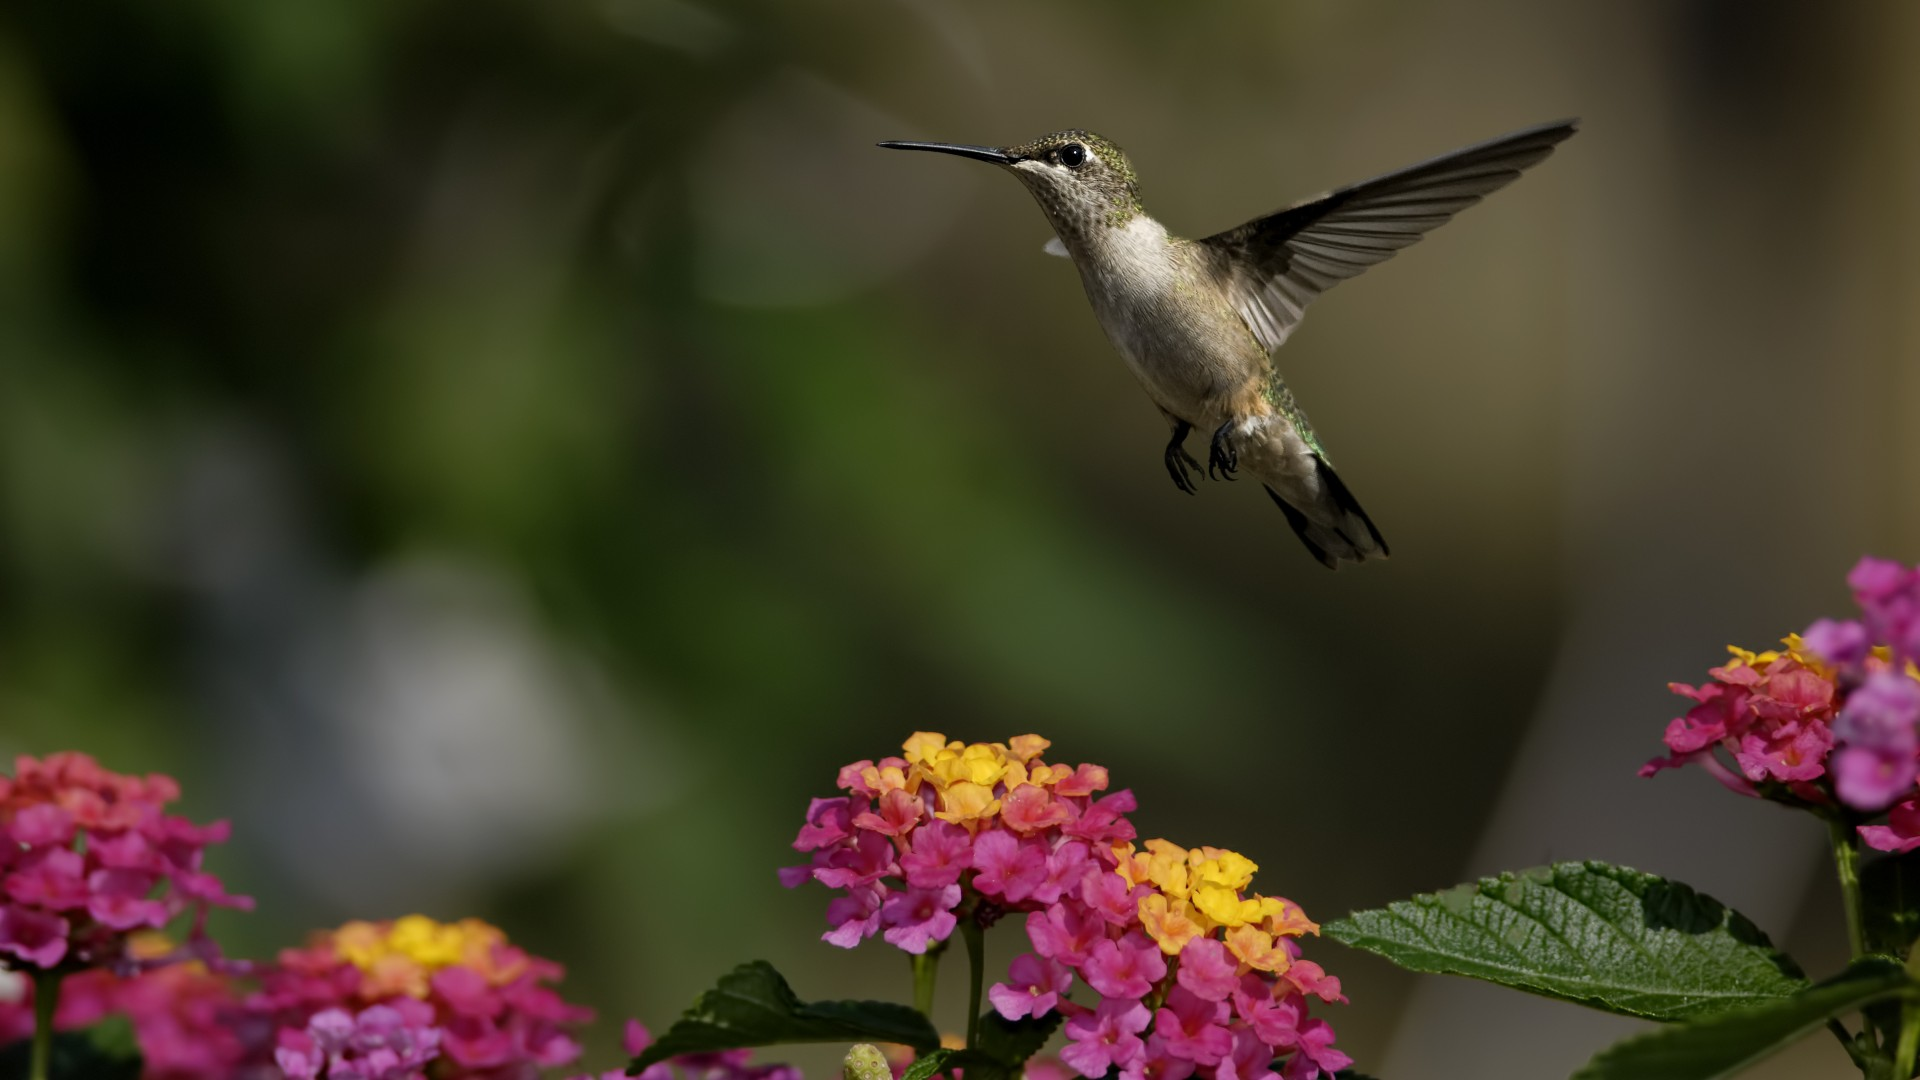 Cute Wallpapers Hd With Quotes Wallpaper Colibri Flowers Flight Blur Animals 4756